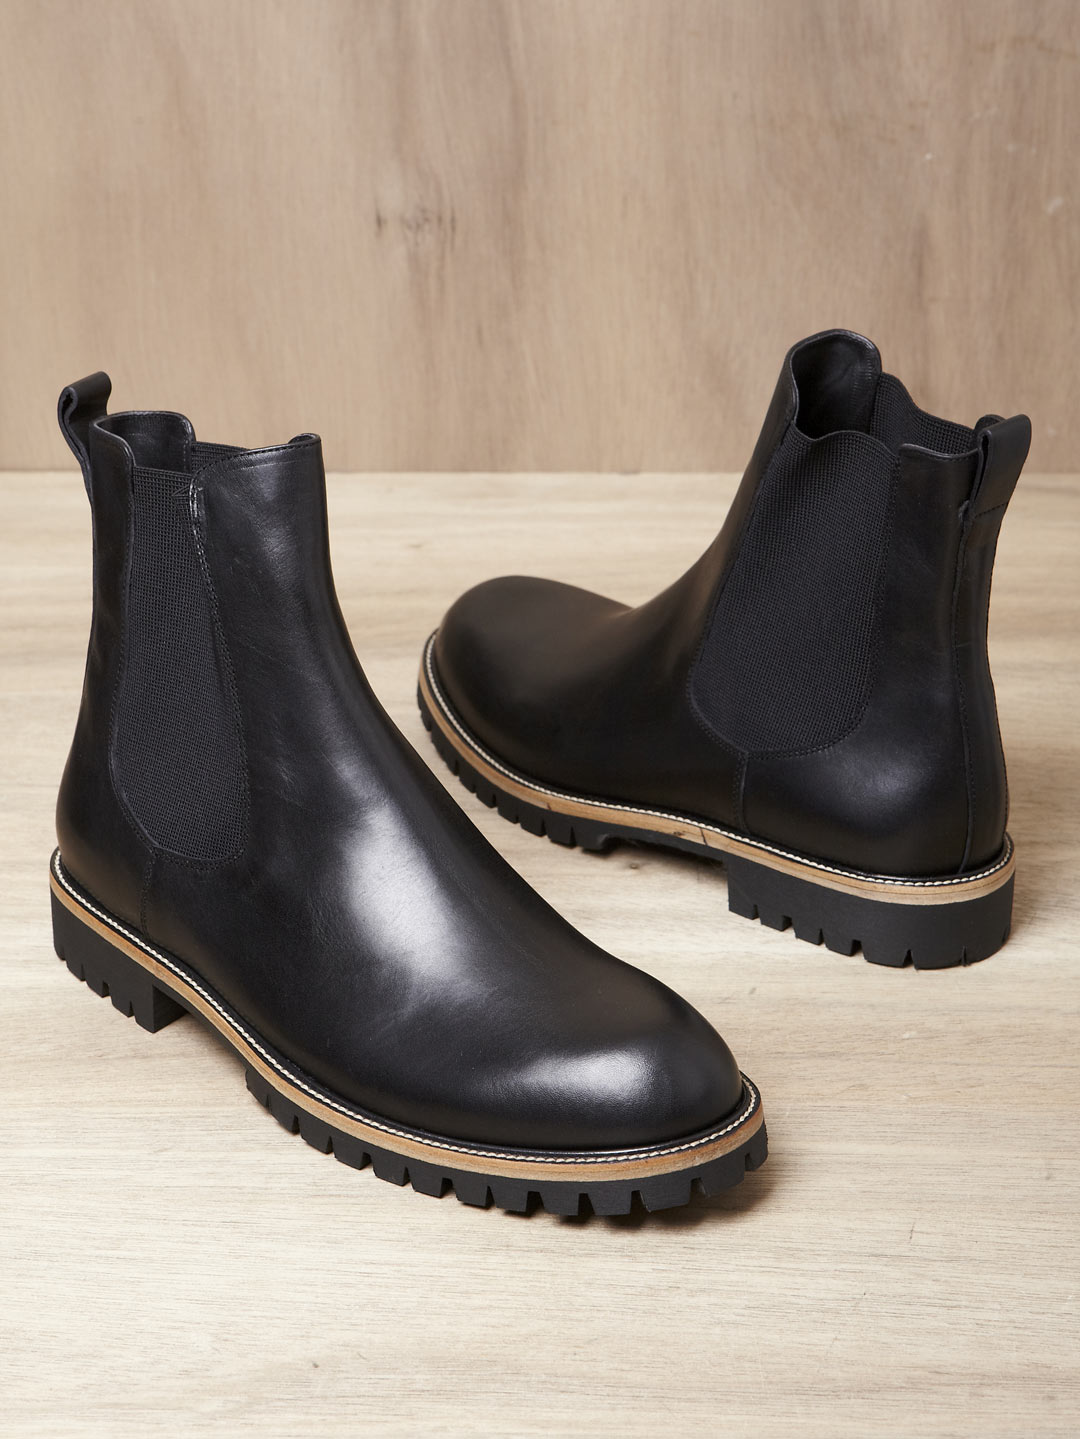 e19016ab9e24 Lyst - Dries Van Noten Dries Van Noten Mens Chelsea Boots in Black ...